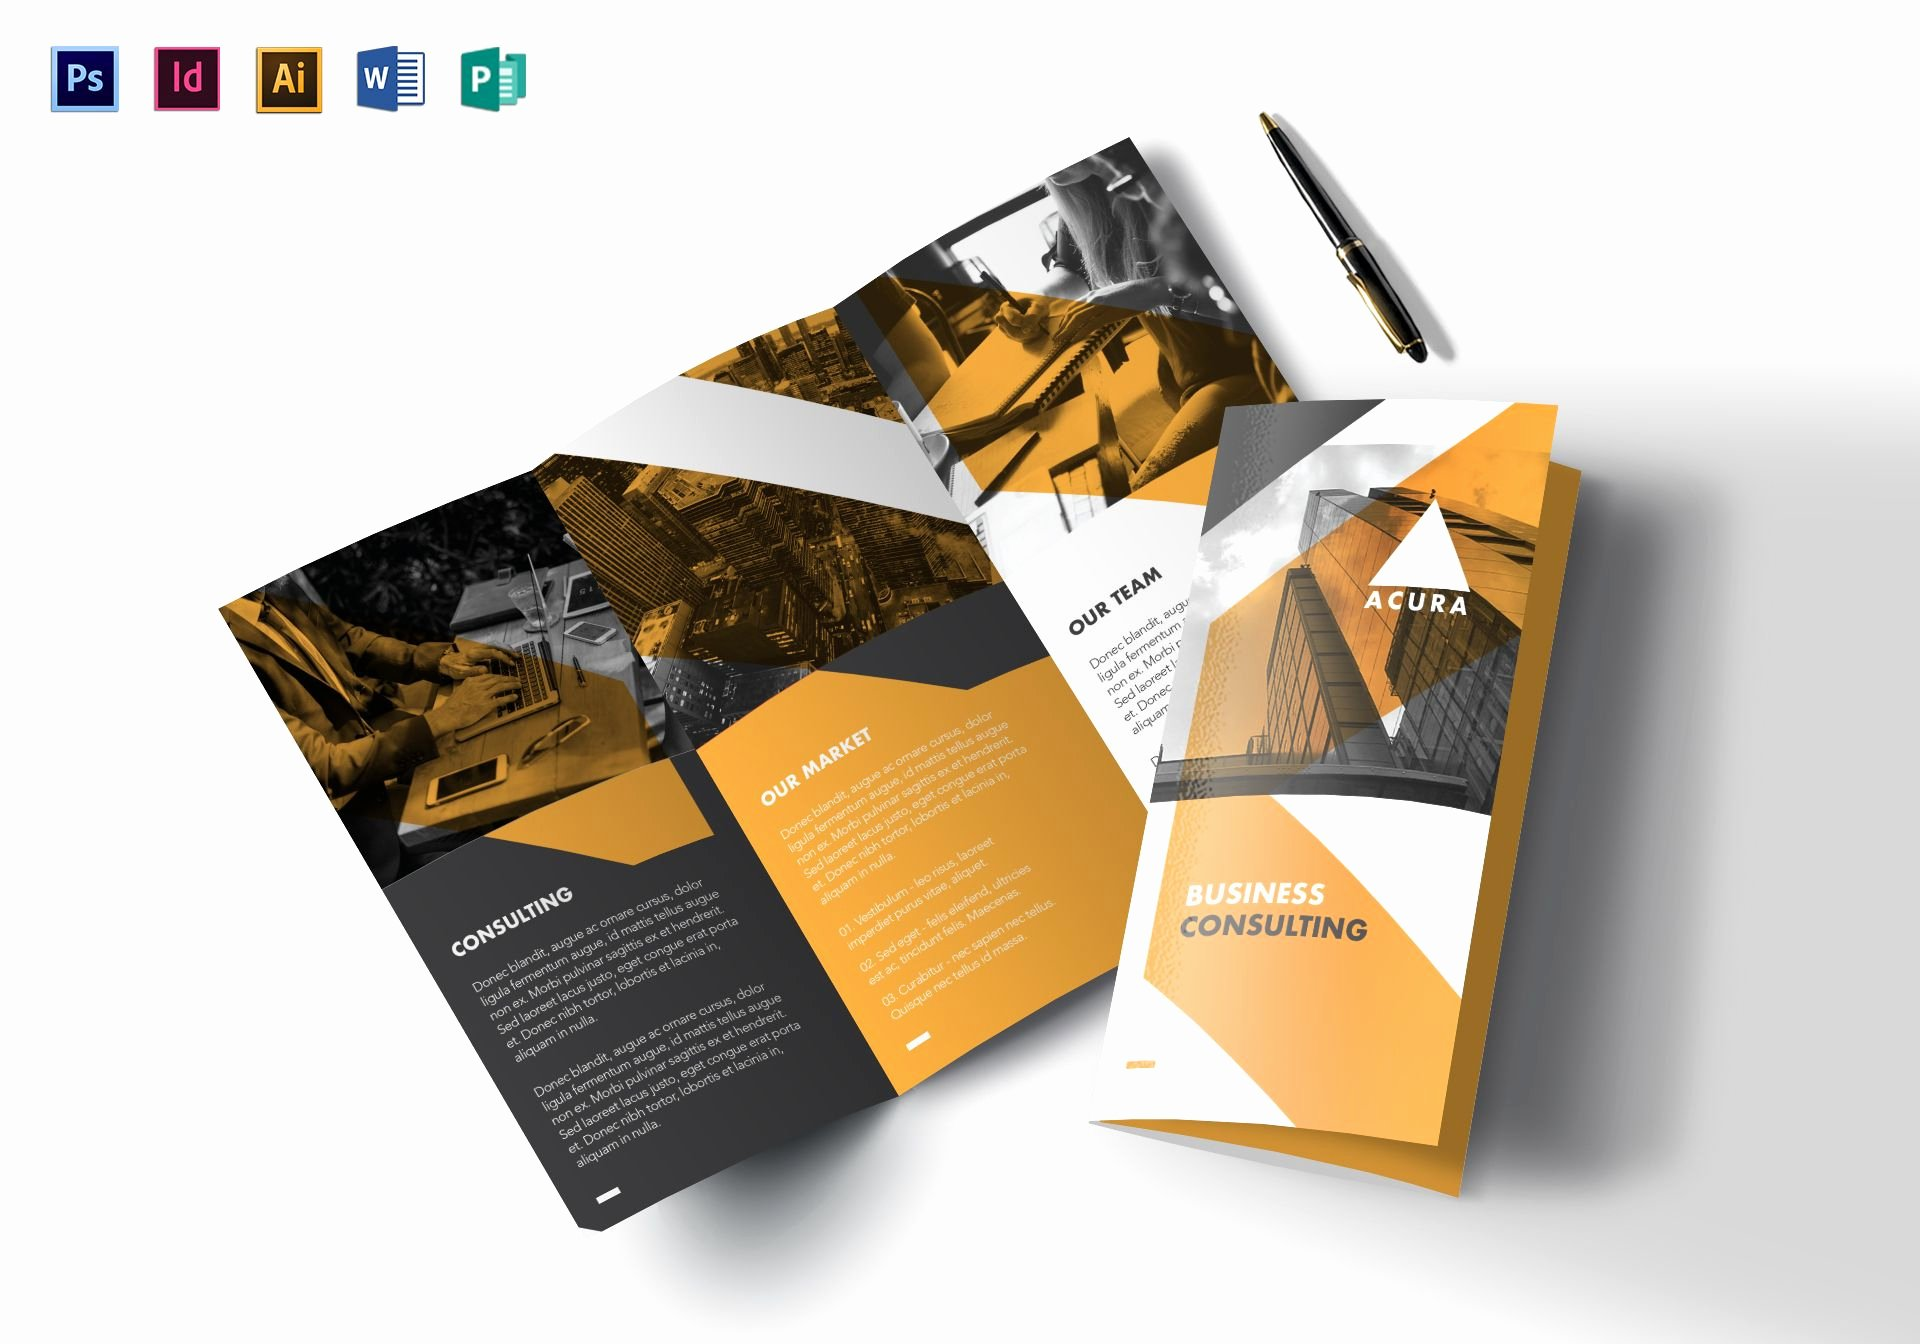 Trifold Brochure Template Photoshop Beautiful Tri Fold Business Brochure Design Template In Psd Word Publisher Illustrator Indesign